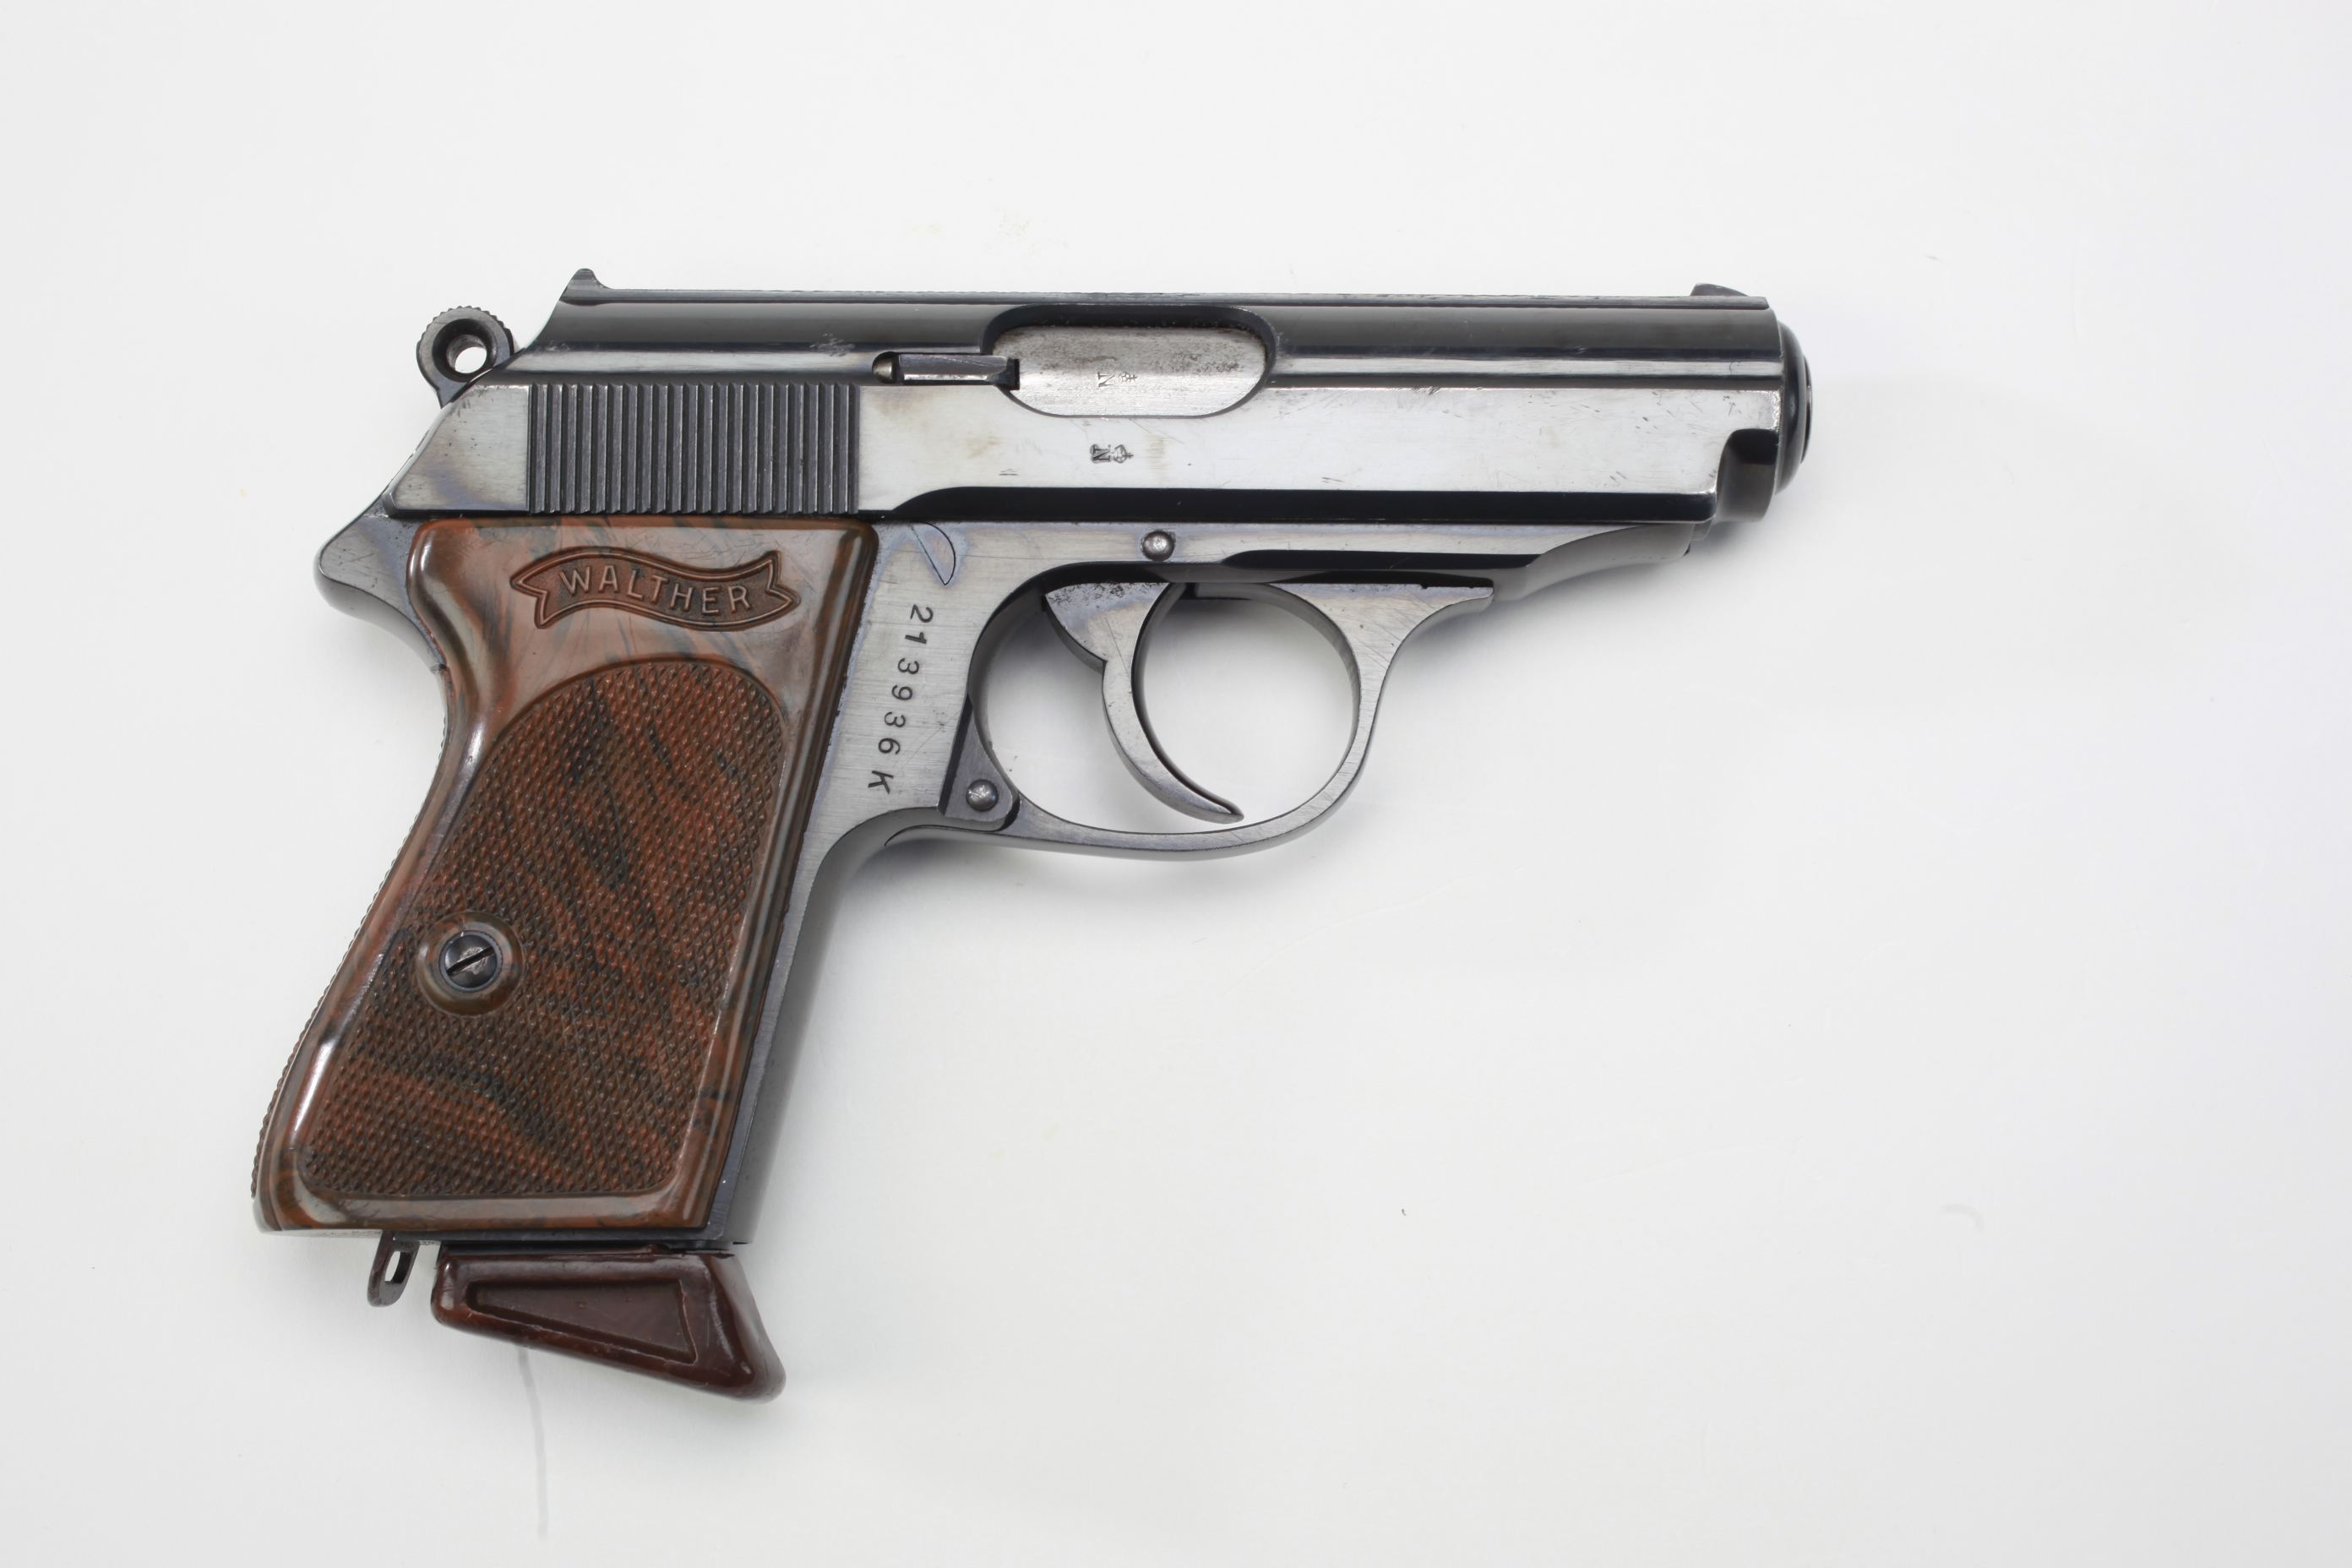 Walther PPK Semi Automatic Pistol